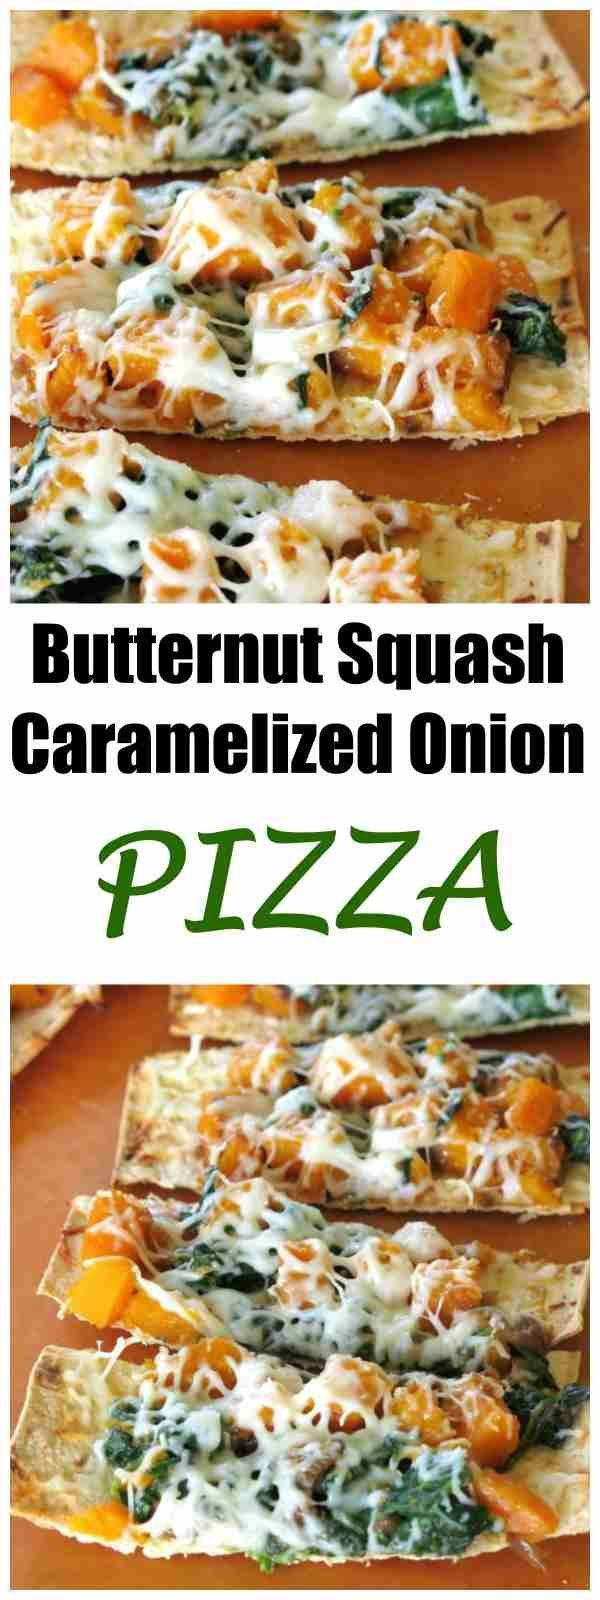 Butternut Squash Caramelized Onion Pizza Recipe - makeover pizza night with this EPIC fall dinner! #pizzanight #butternutsquash #pizza #fallrecipes